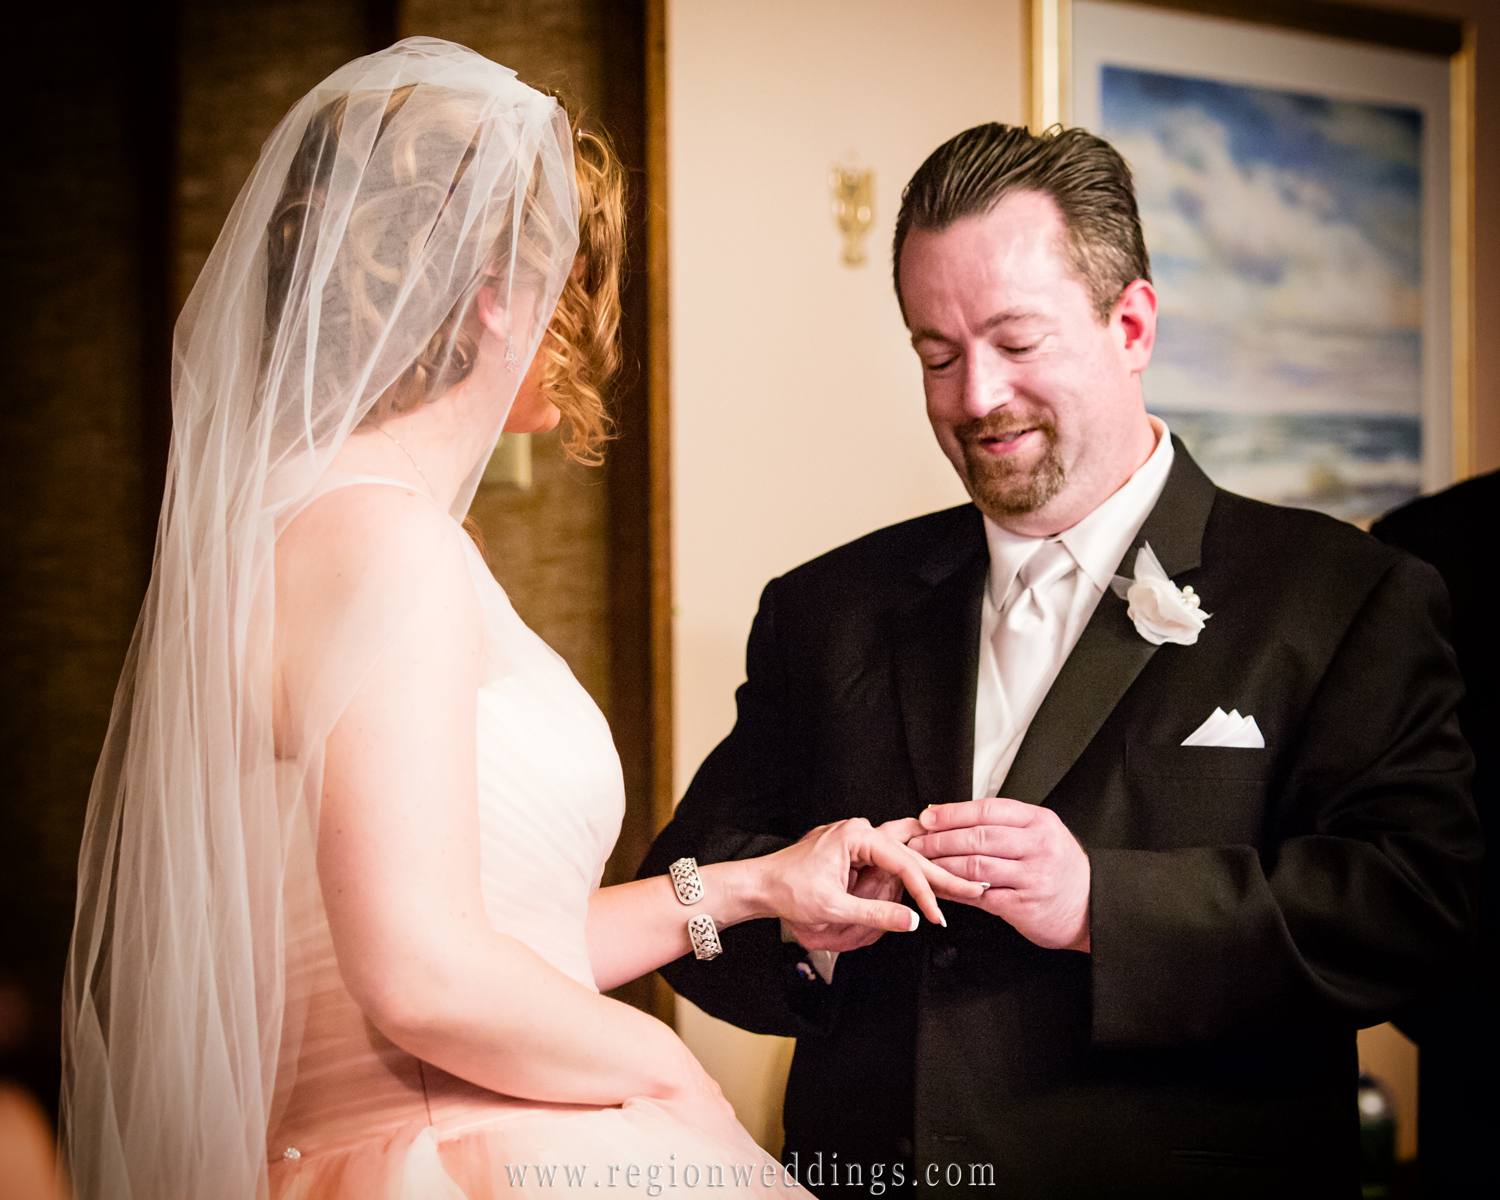 The groom places the ring upon his bride at a wedding ceremony at Free Spirit Church.